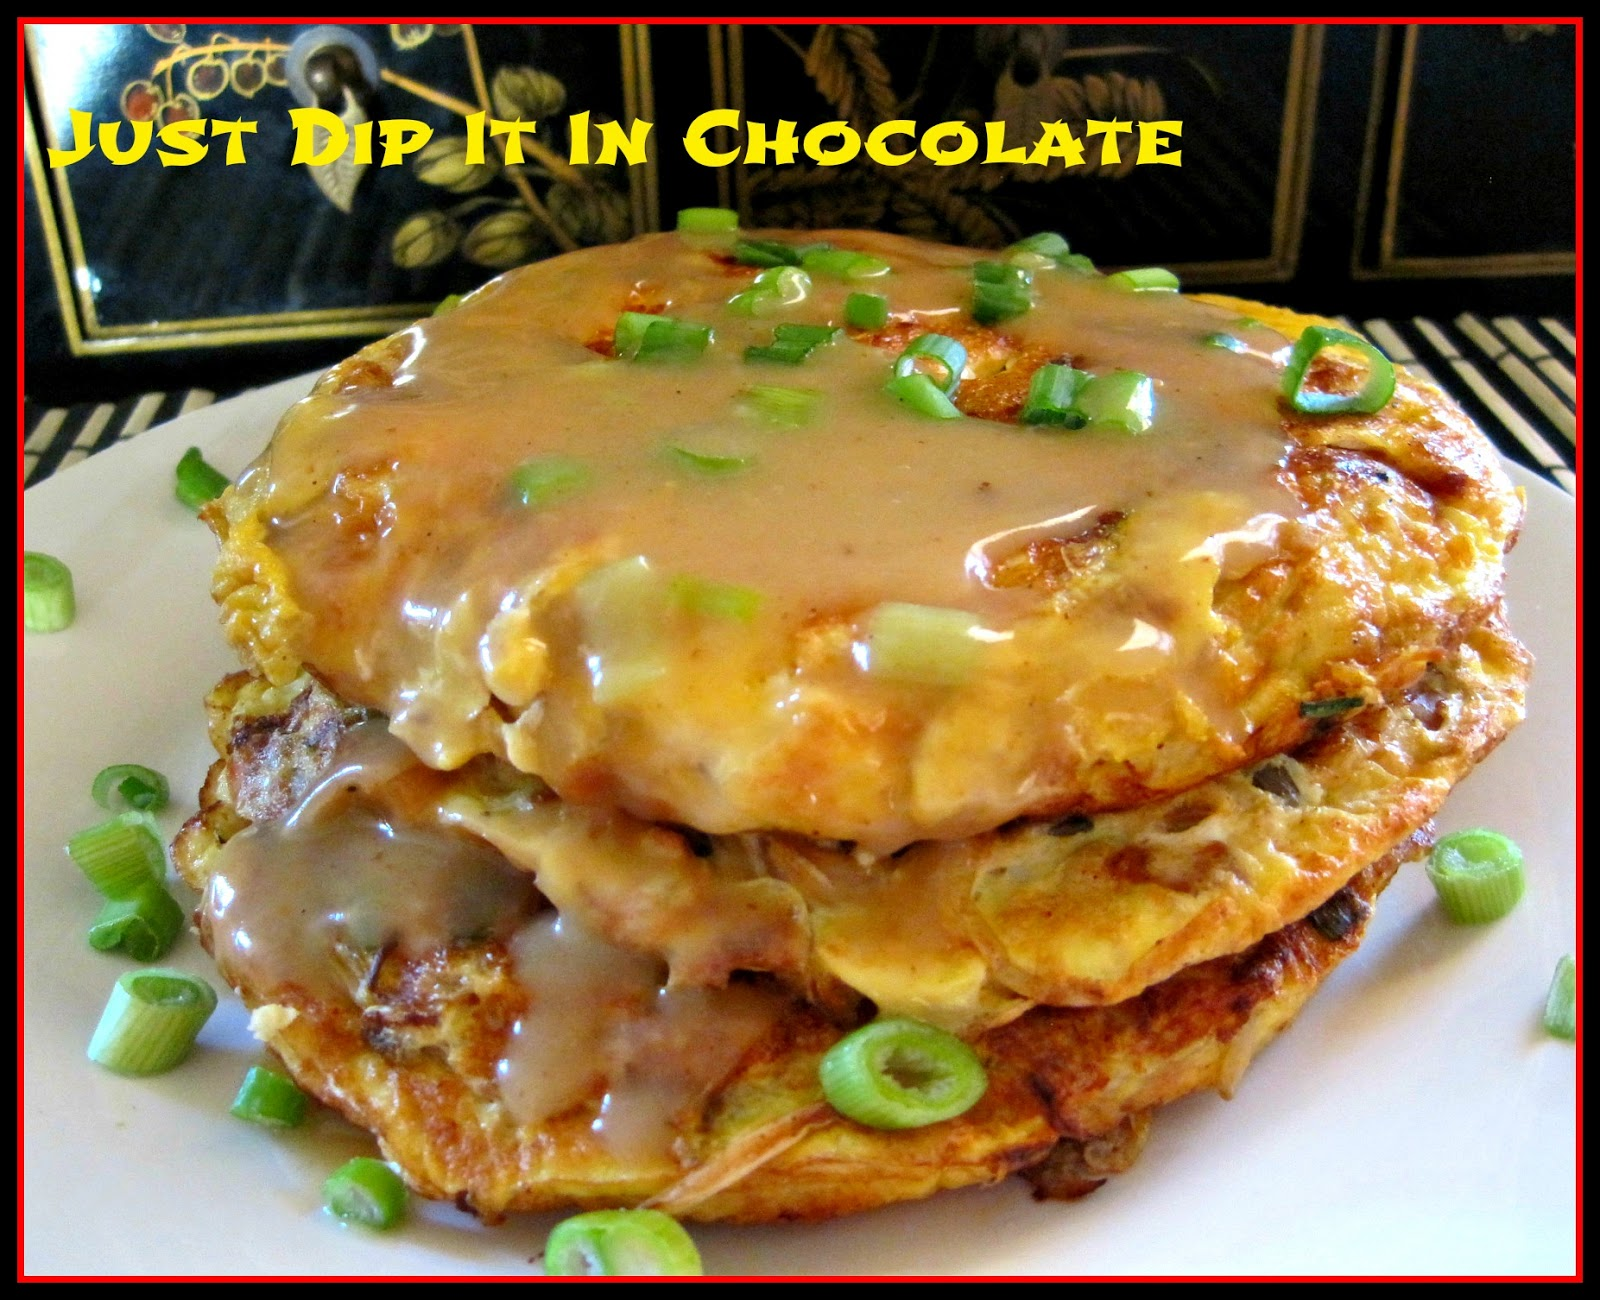 Just Dip It In Chocolate: Shrimp Egg Foo Young Recipe